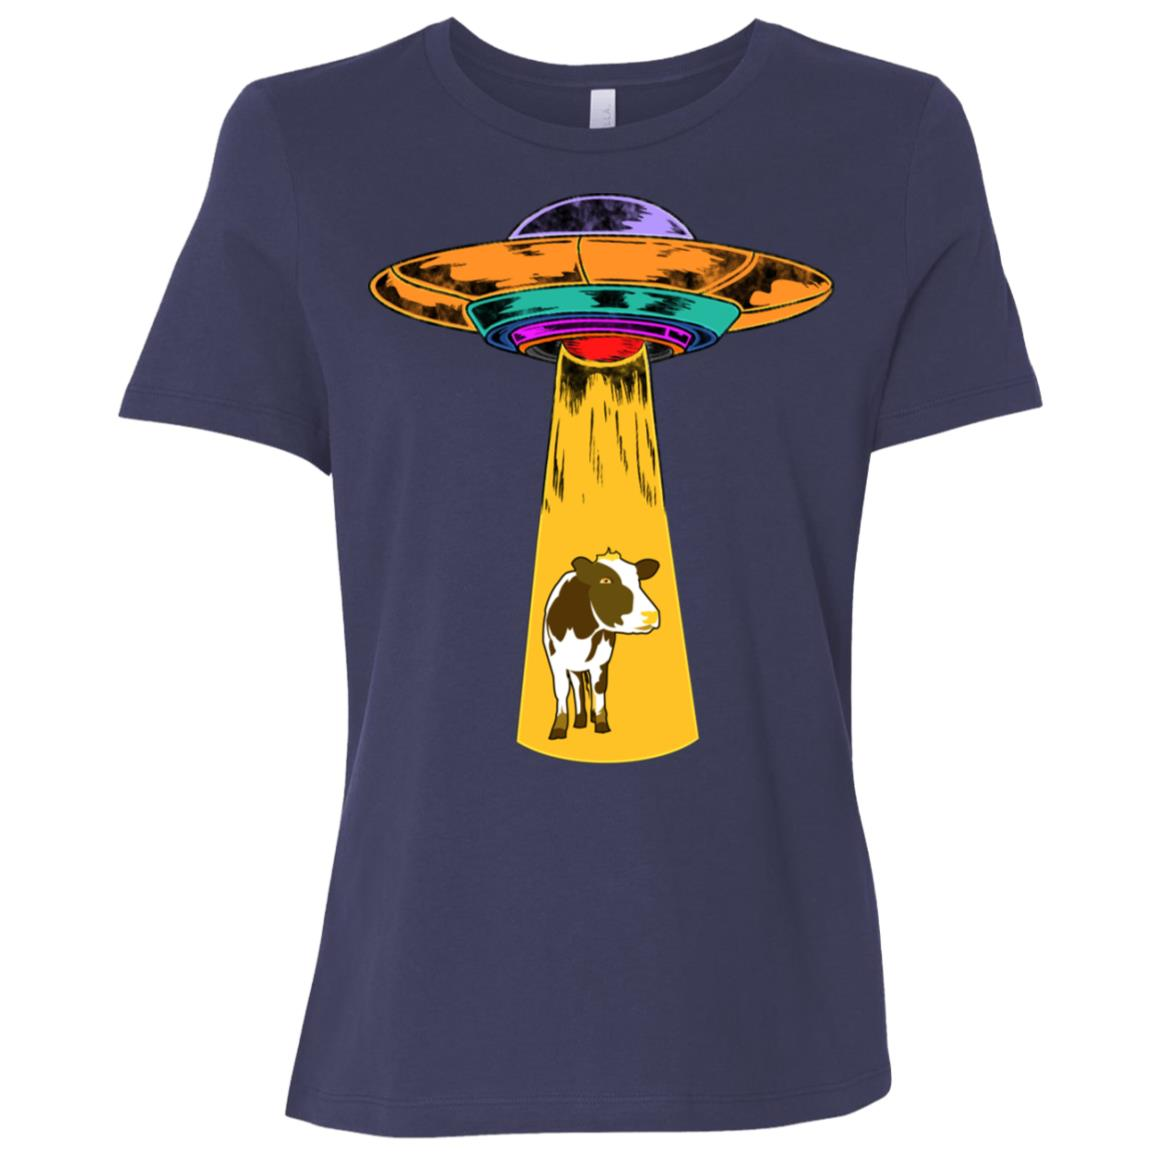 Ufo Abducting a Cow Women Short Sleeve T-Shirt